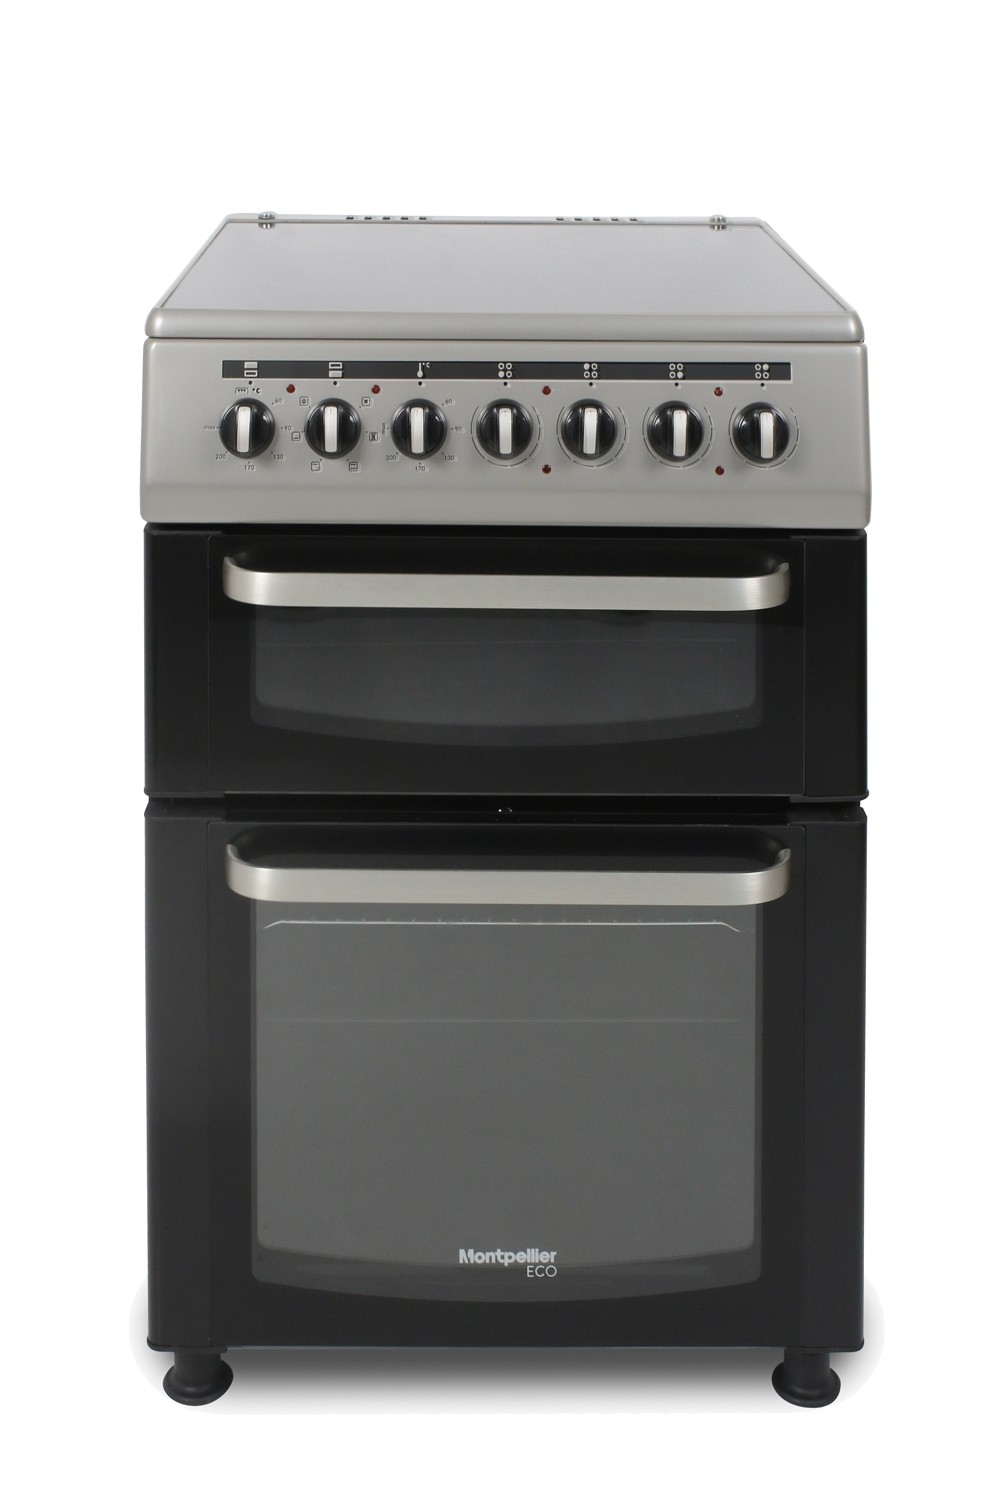 Montpellier TCC60SS Cooker